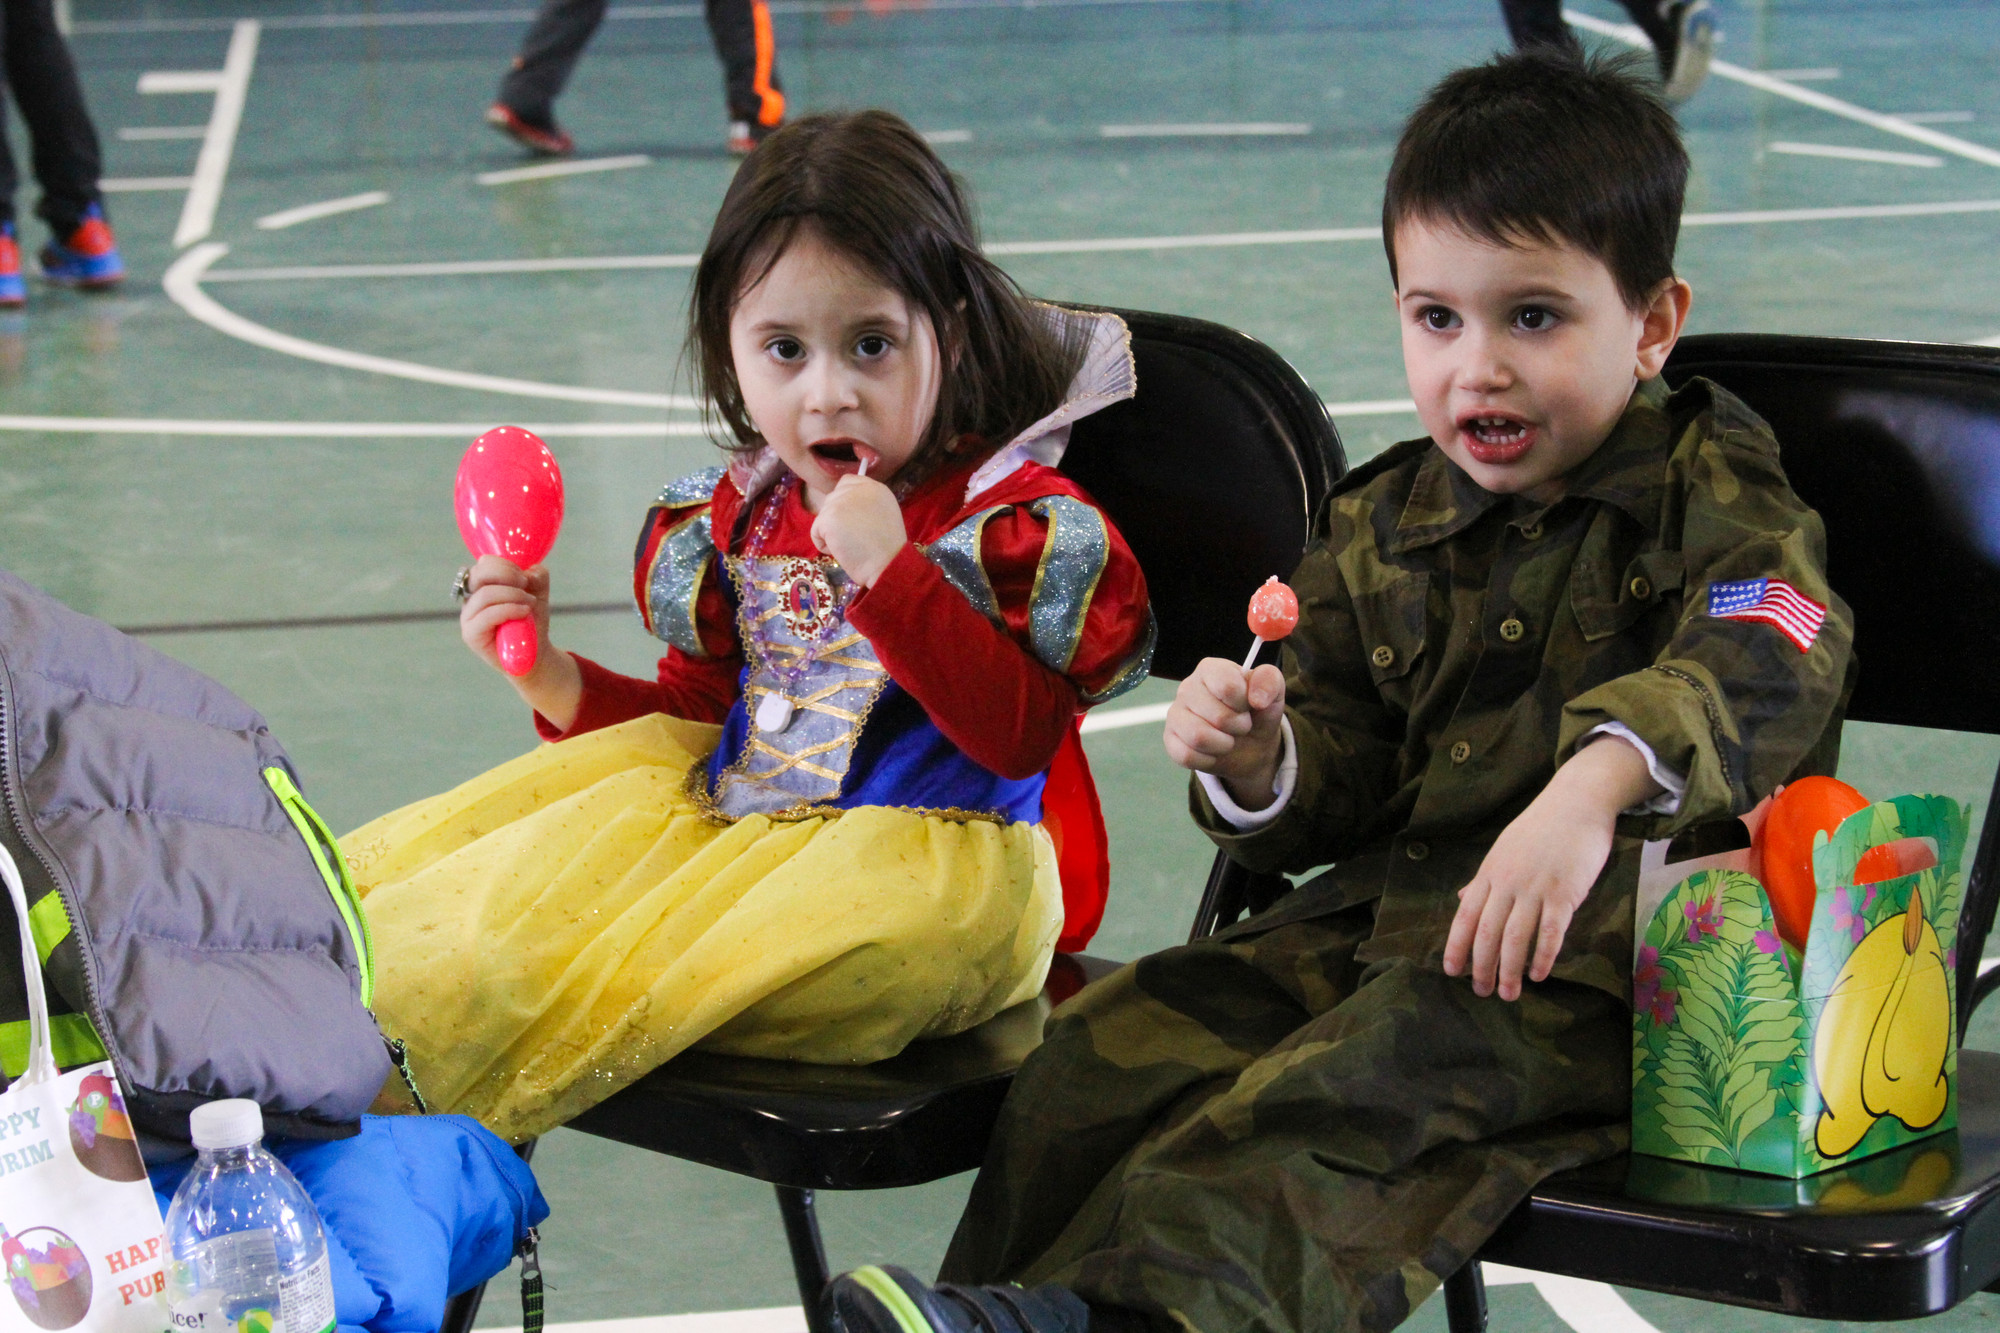 Shani, 3, and David, 4, Halimi took a break from the Purim activities.